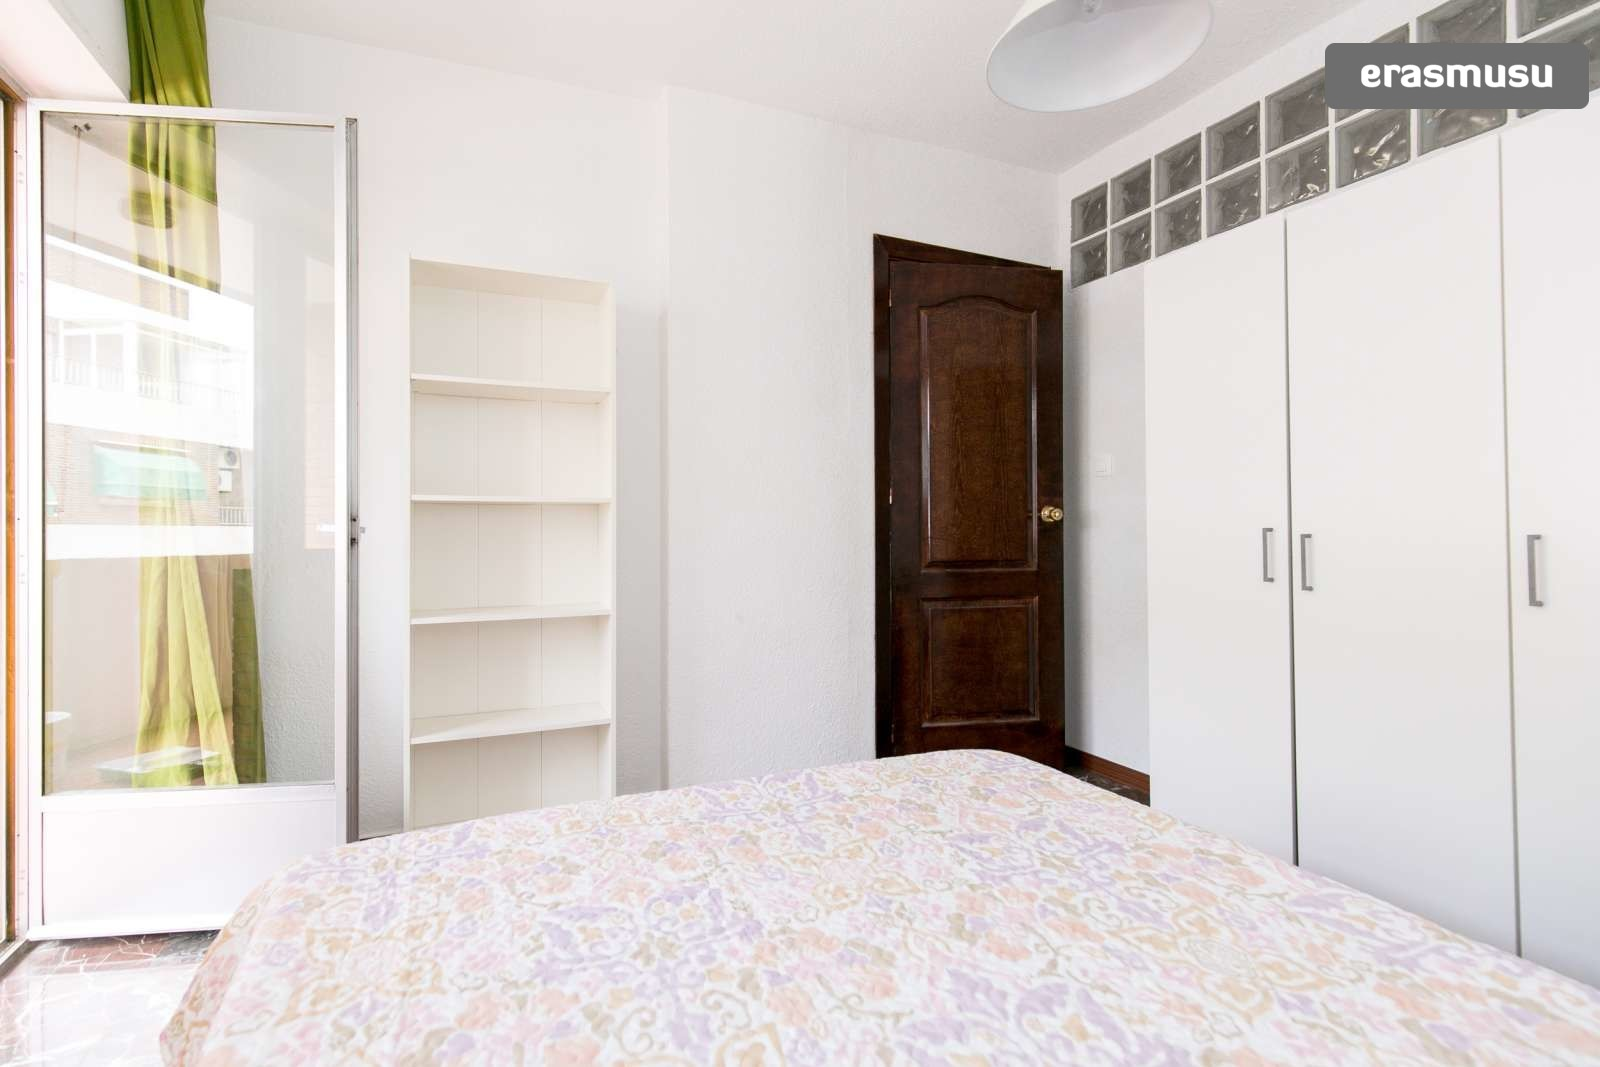 double-bed-5-rooms-available-large-apartment-near-university-gra